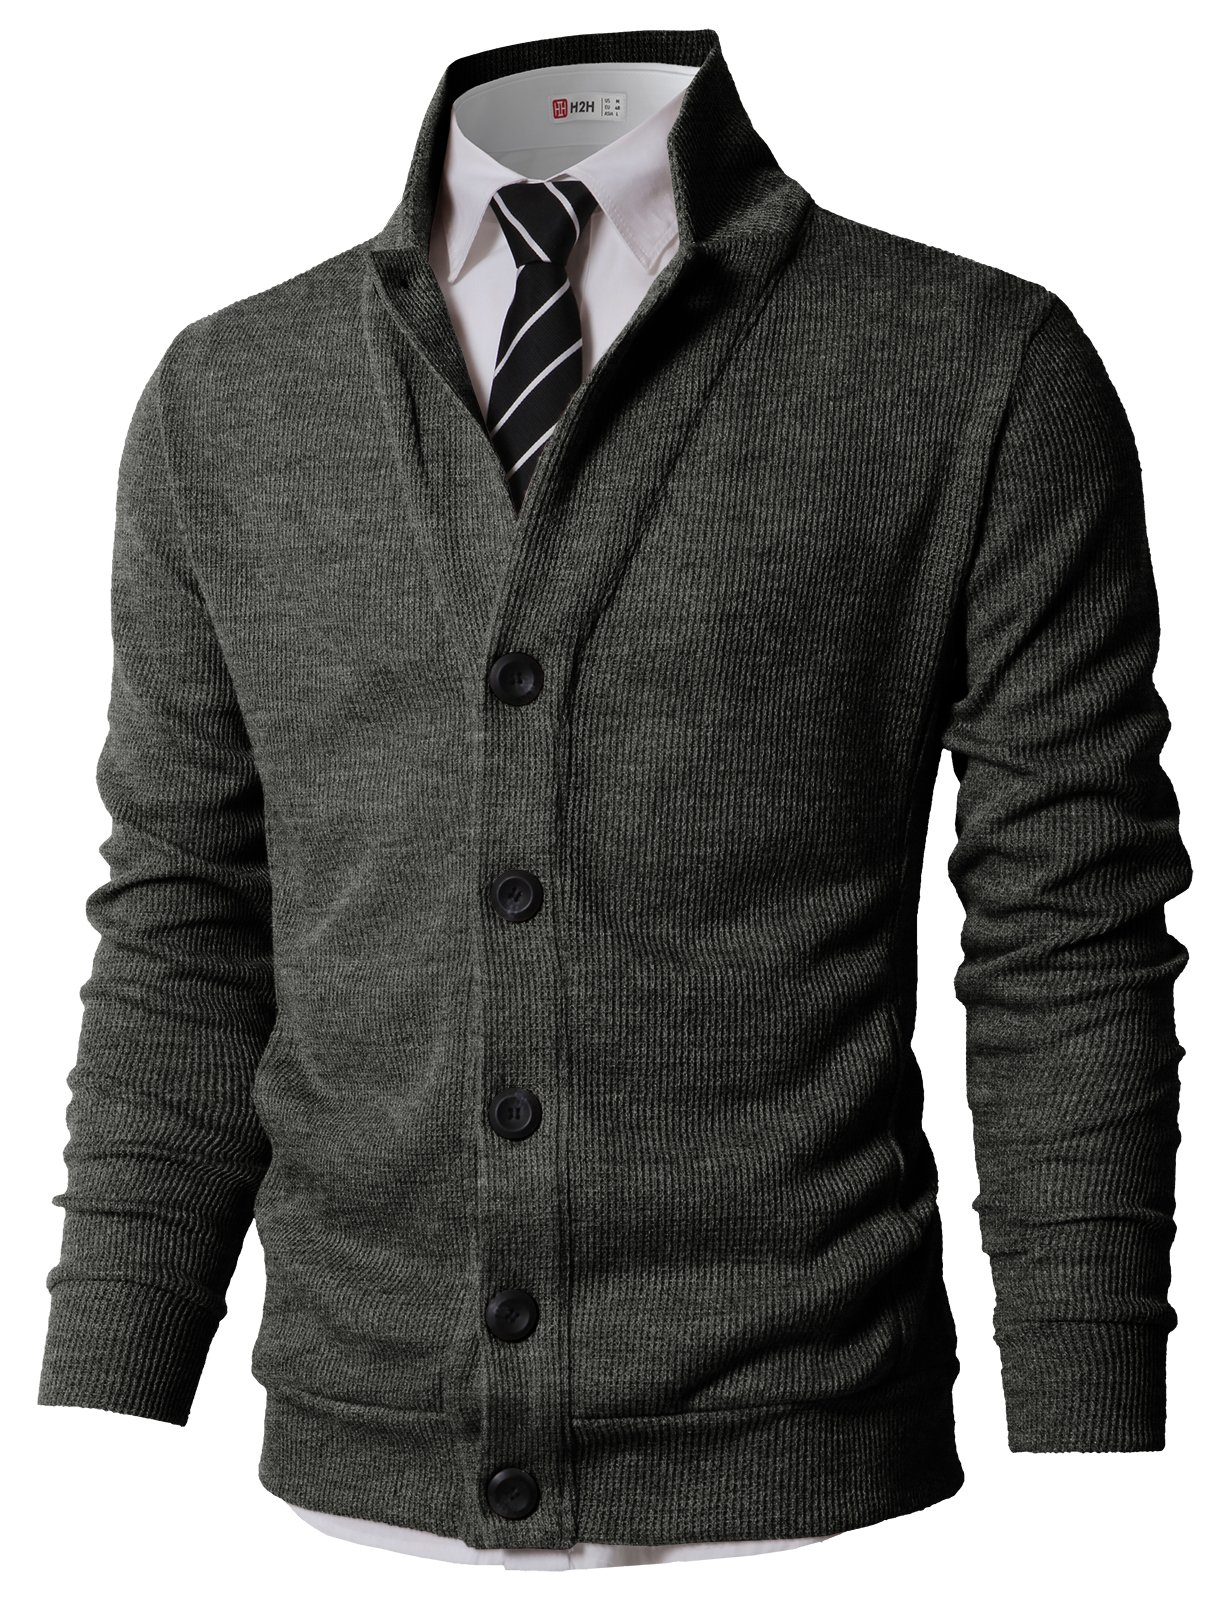 H2H Mens Basic Classic Fit Long Sleeve Notched Lapel Jacket Cardigans Charcoal US L/Asia XL (KMOCAL0182)